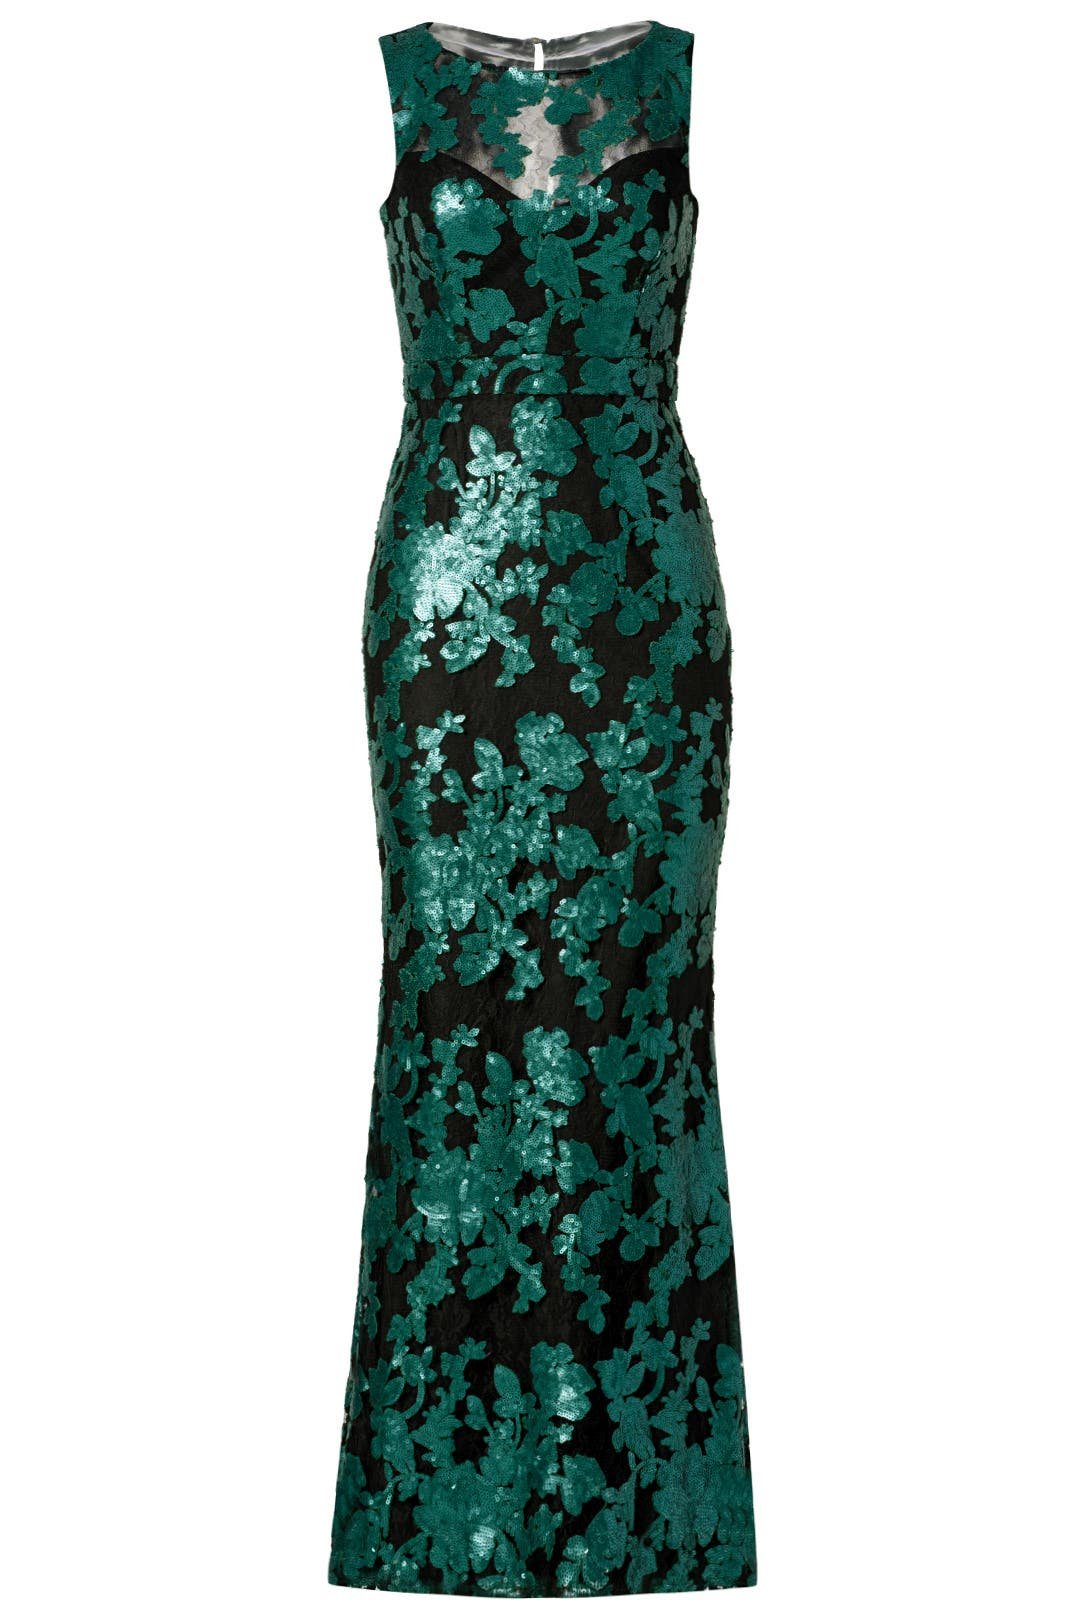 Ivy Gown by Badgley Mischka for $75 | Rent the Runway